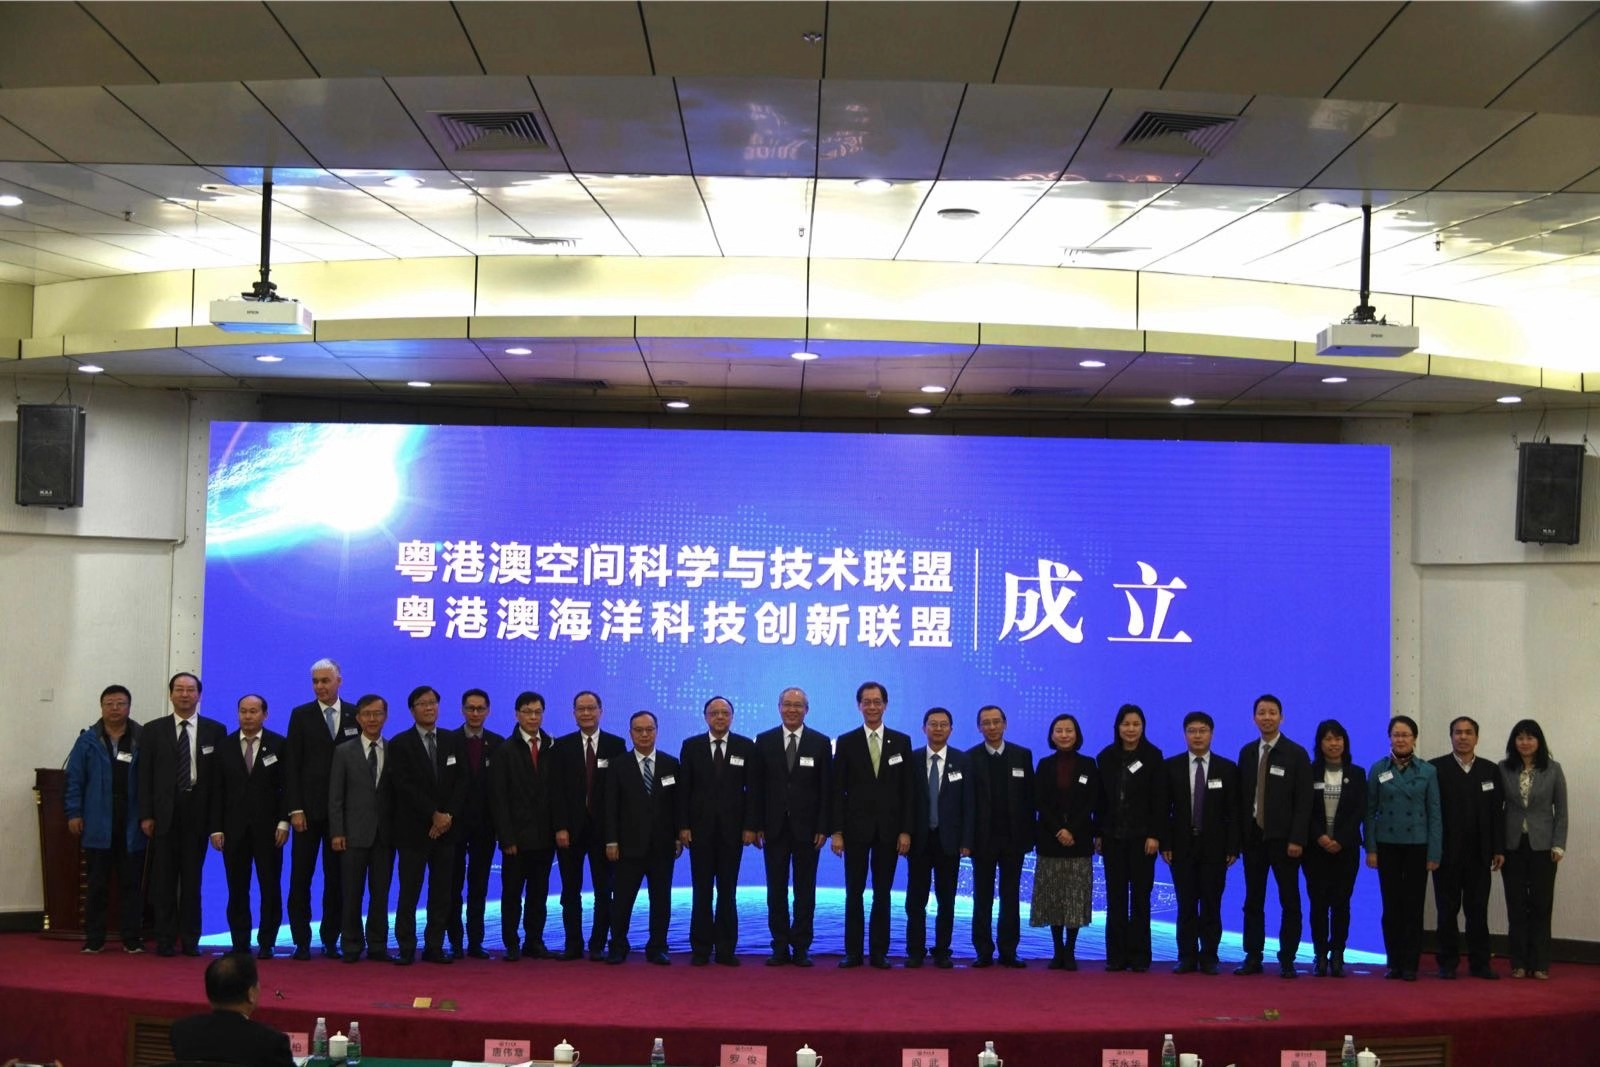 Founding Conference of Guangdong-Hong Kong-Macao Alliance